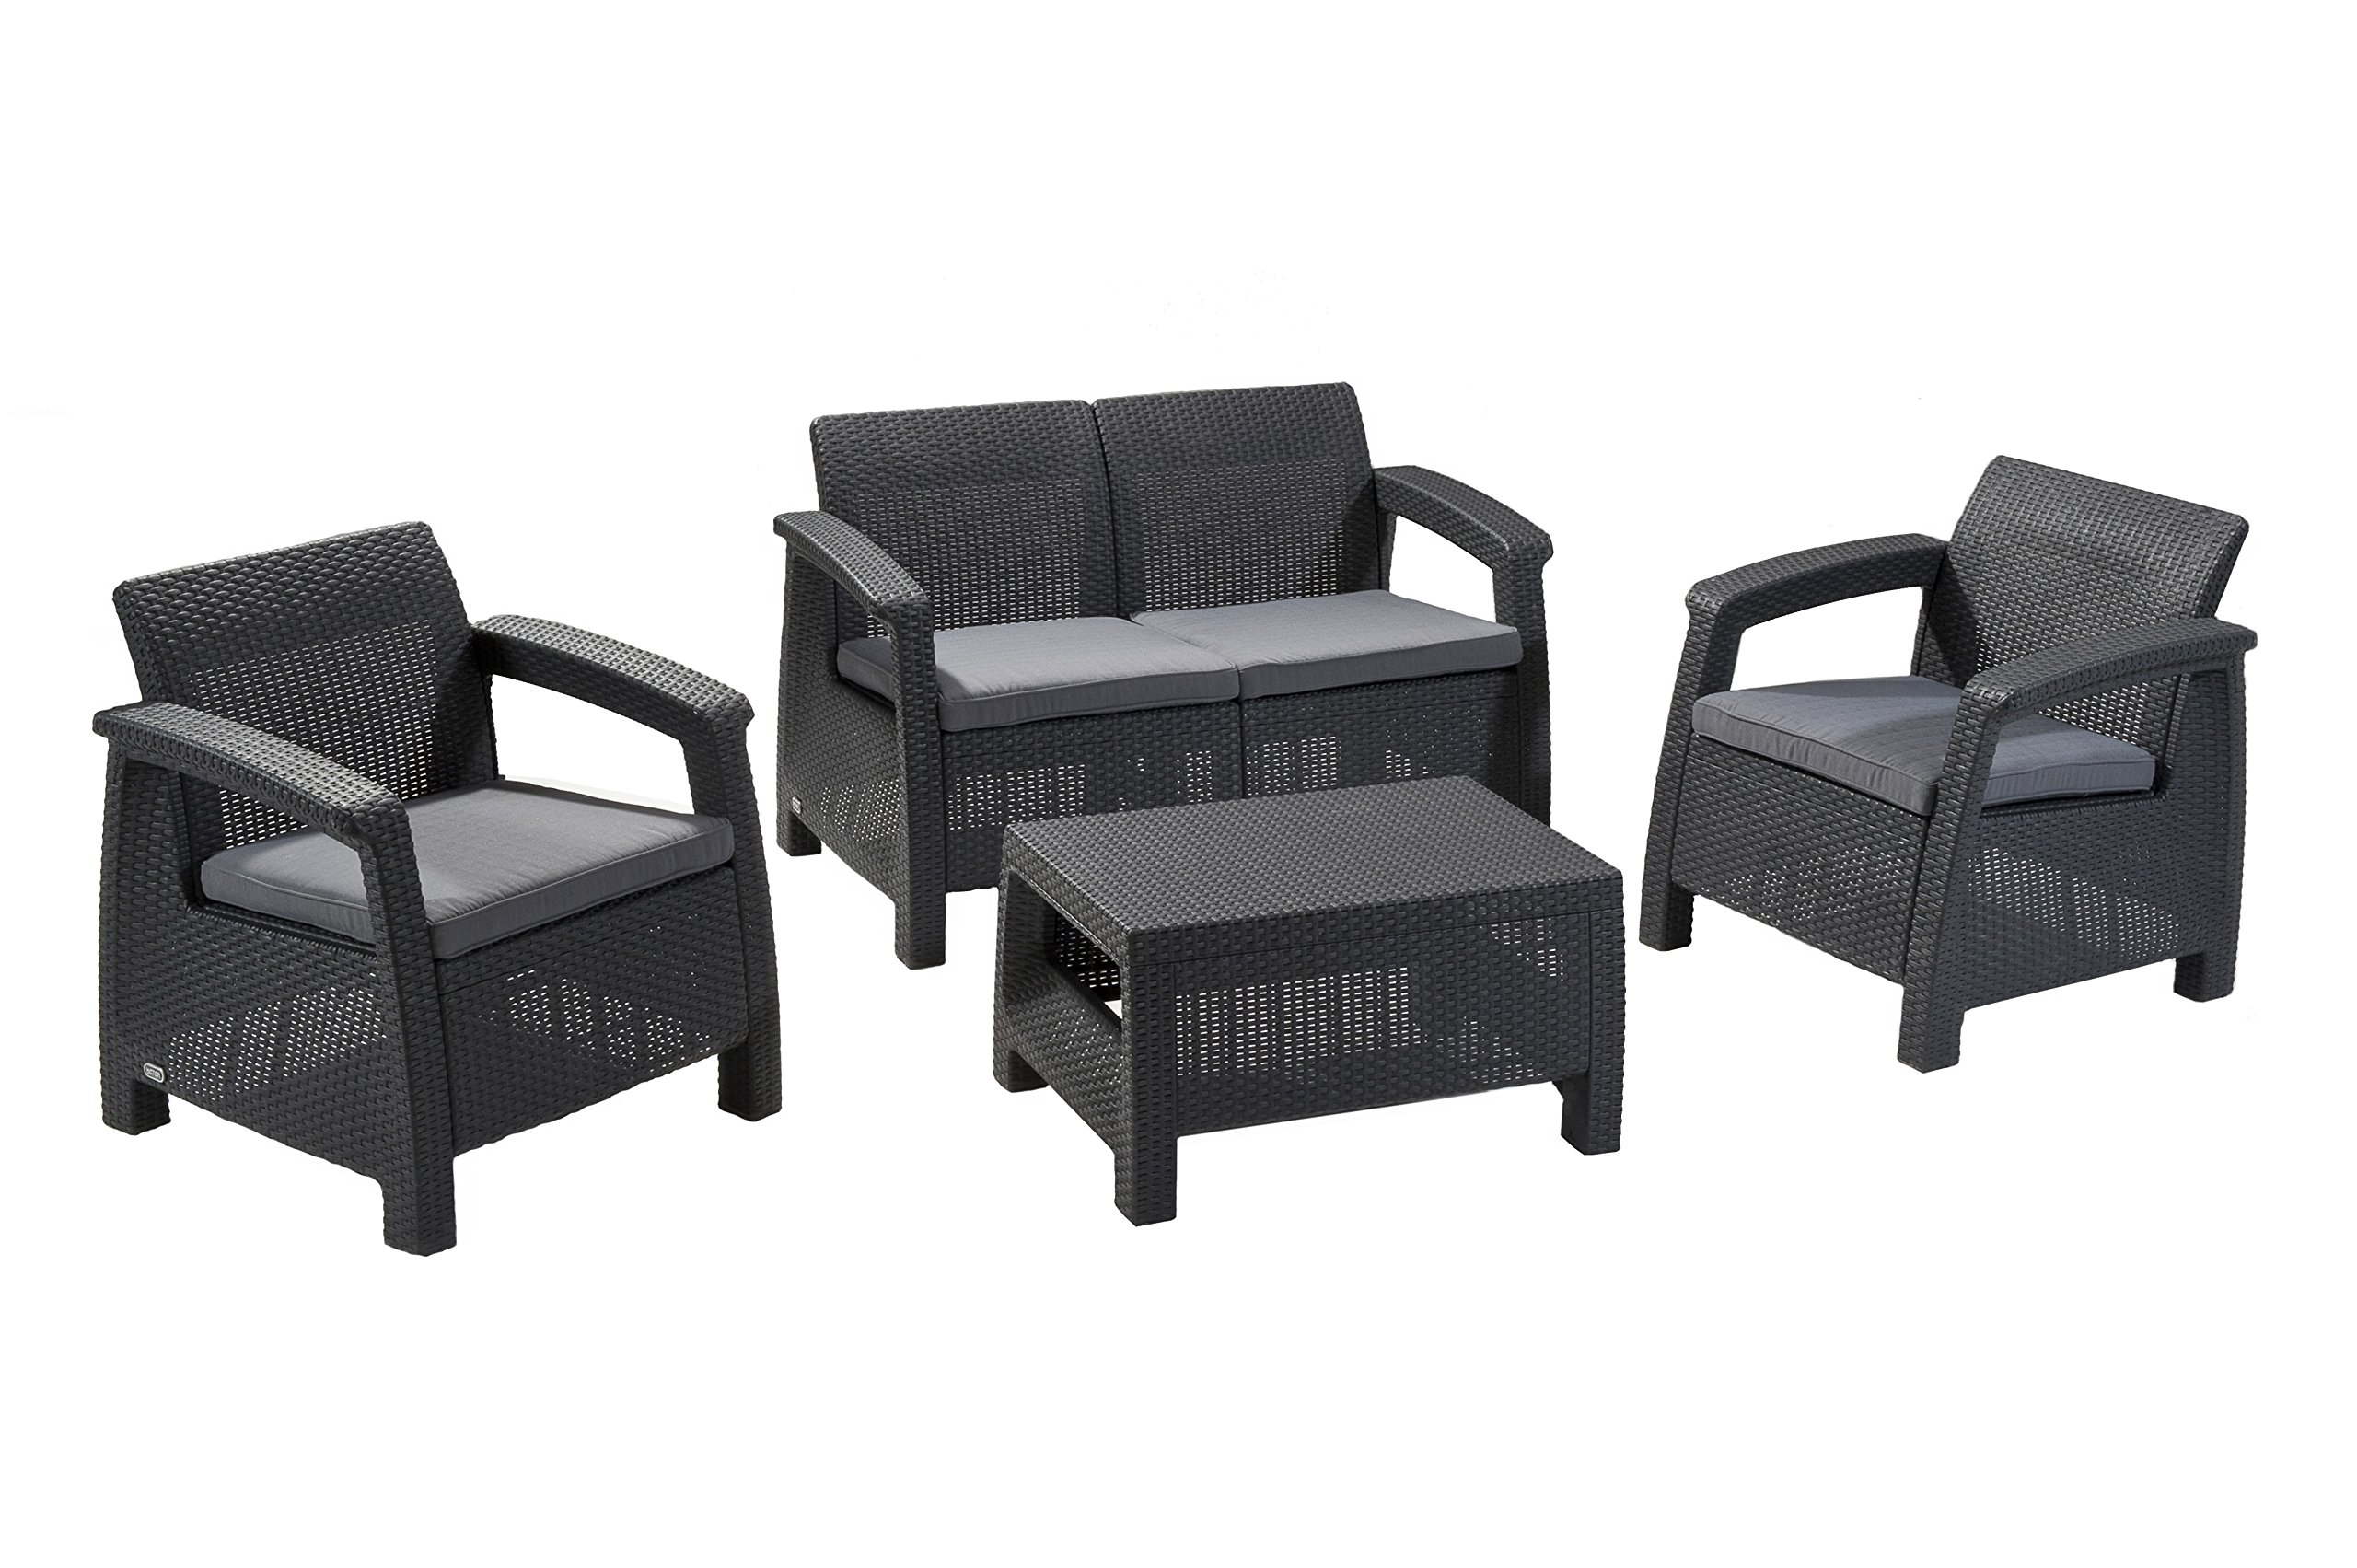 Keter Corfu 4 Piece Set All Weather Outdoor Patio Garden Furniture w/ Cushions, Charcoal - Ergonomically engineered for ultimate comfort Contemporary tones of natural looking rattan in dark grey High quality polypropylene resin won't rust or fade - patio-furniture, patio, conversation-sets - 81jAmjBRGxL -